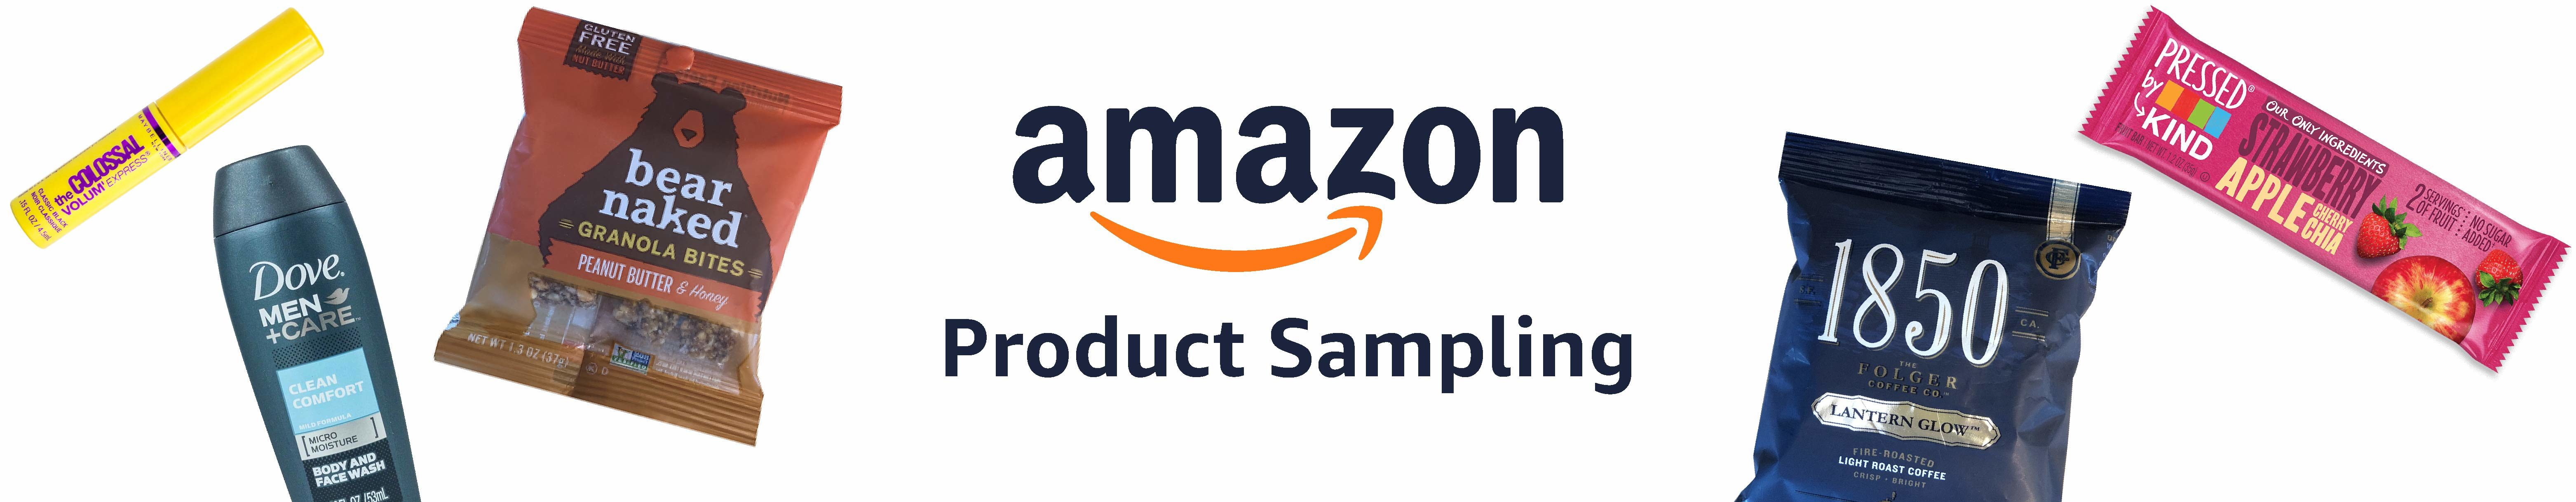 Amazon Produkttests Samples